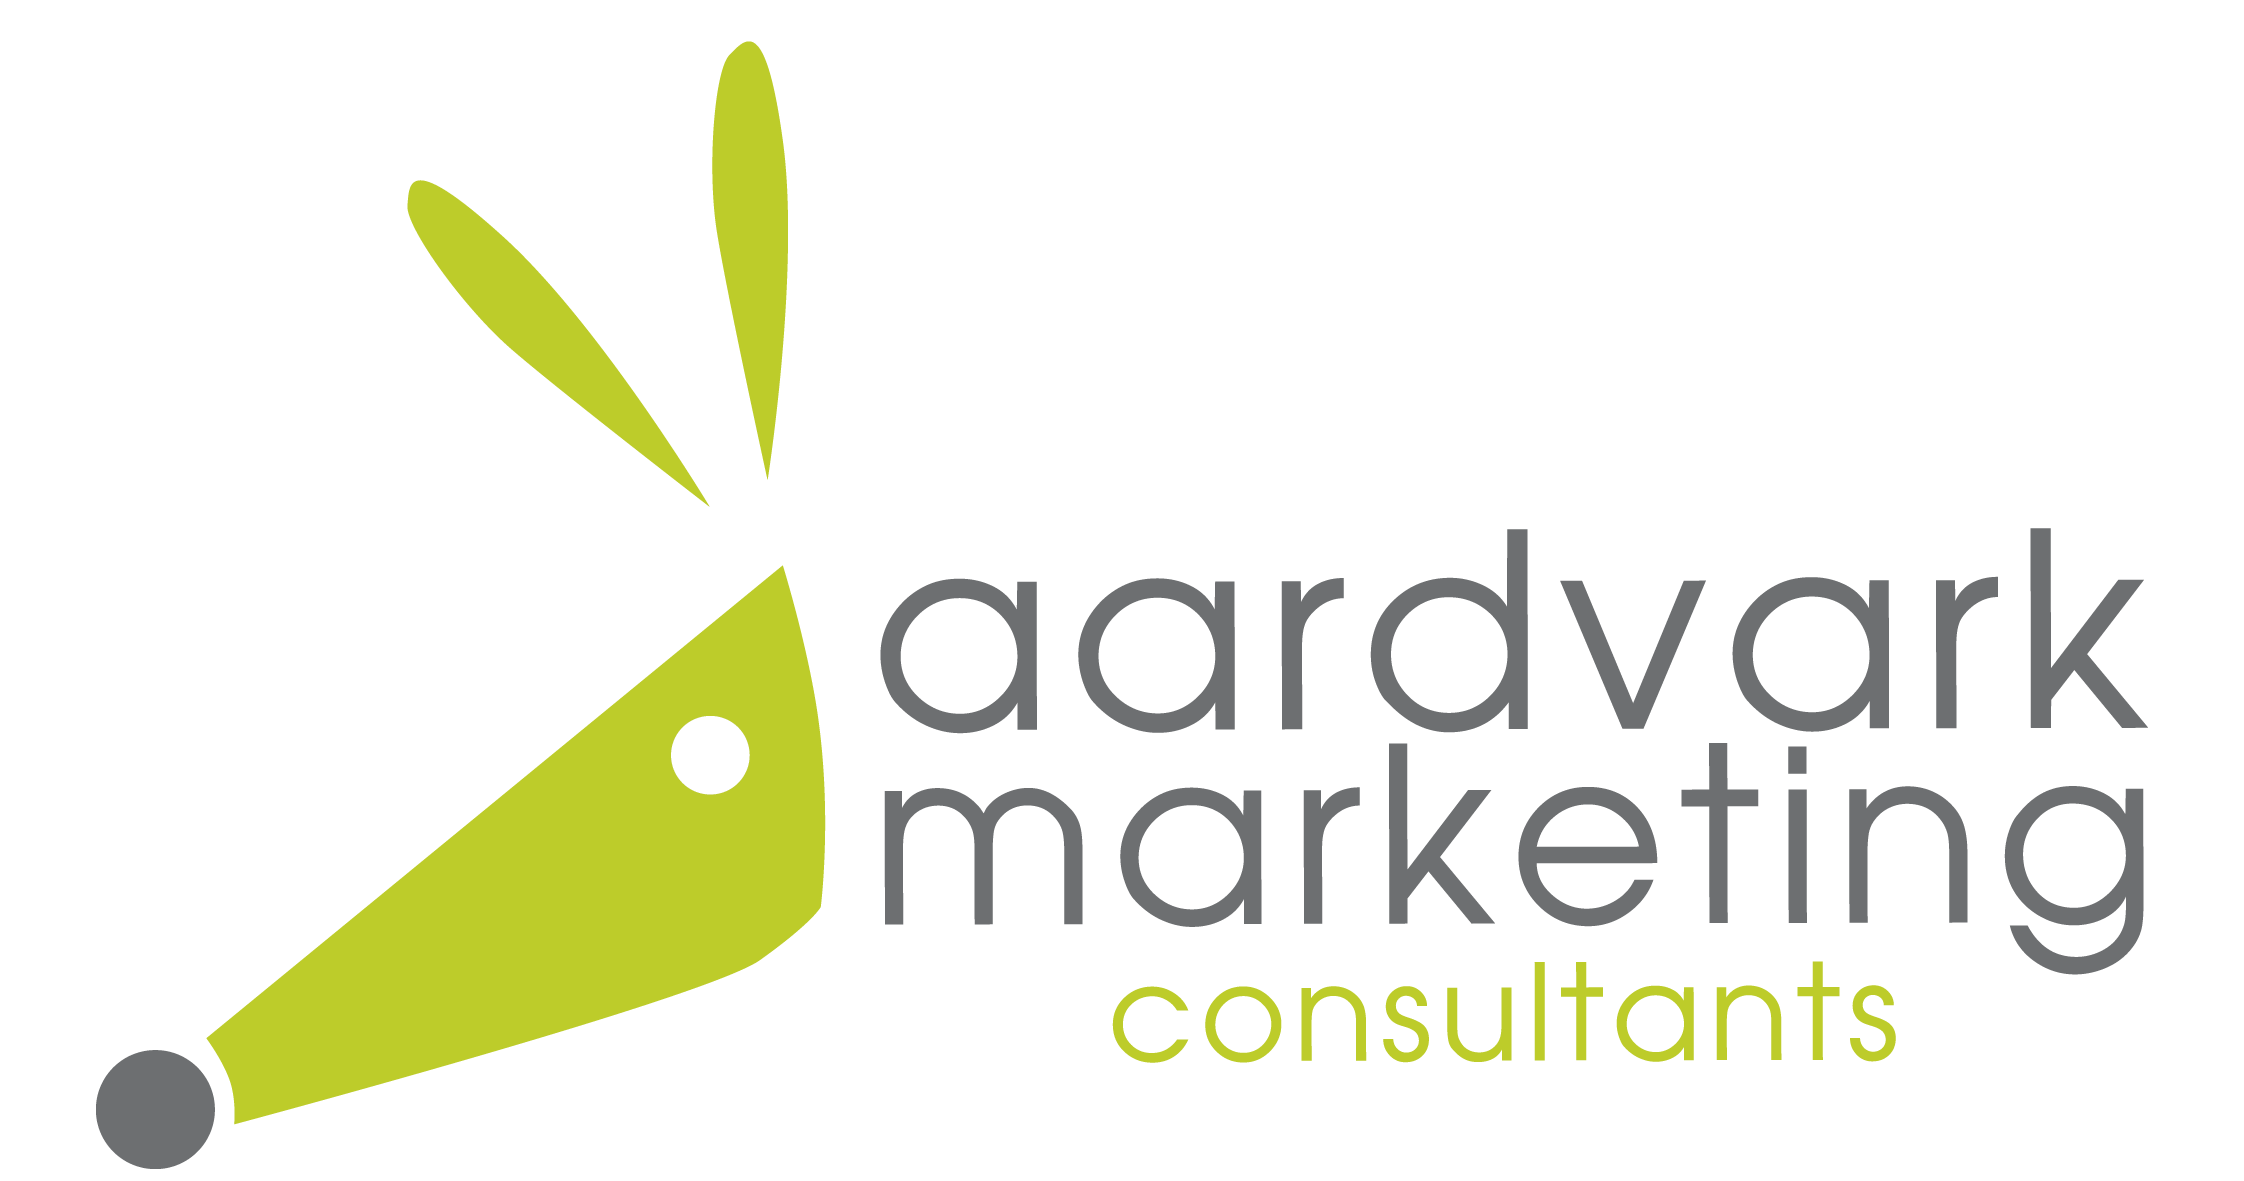 Aardvark Marketing Consultants Ltd